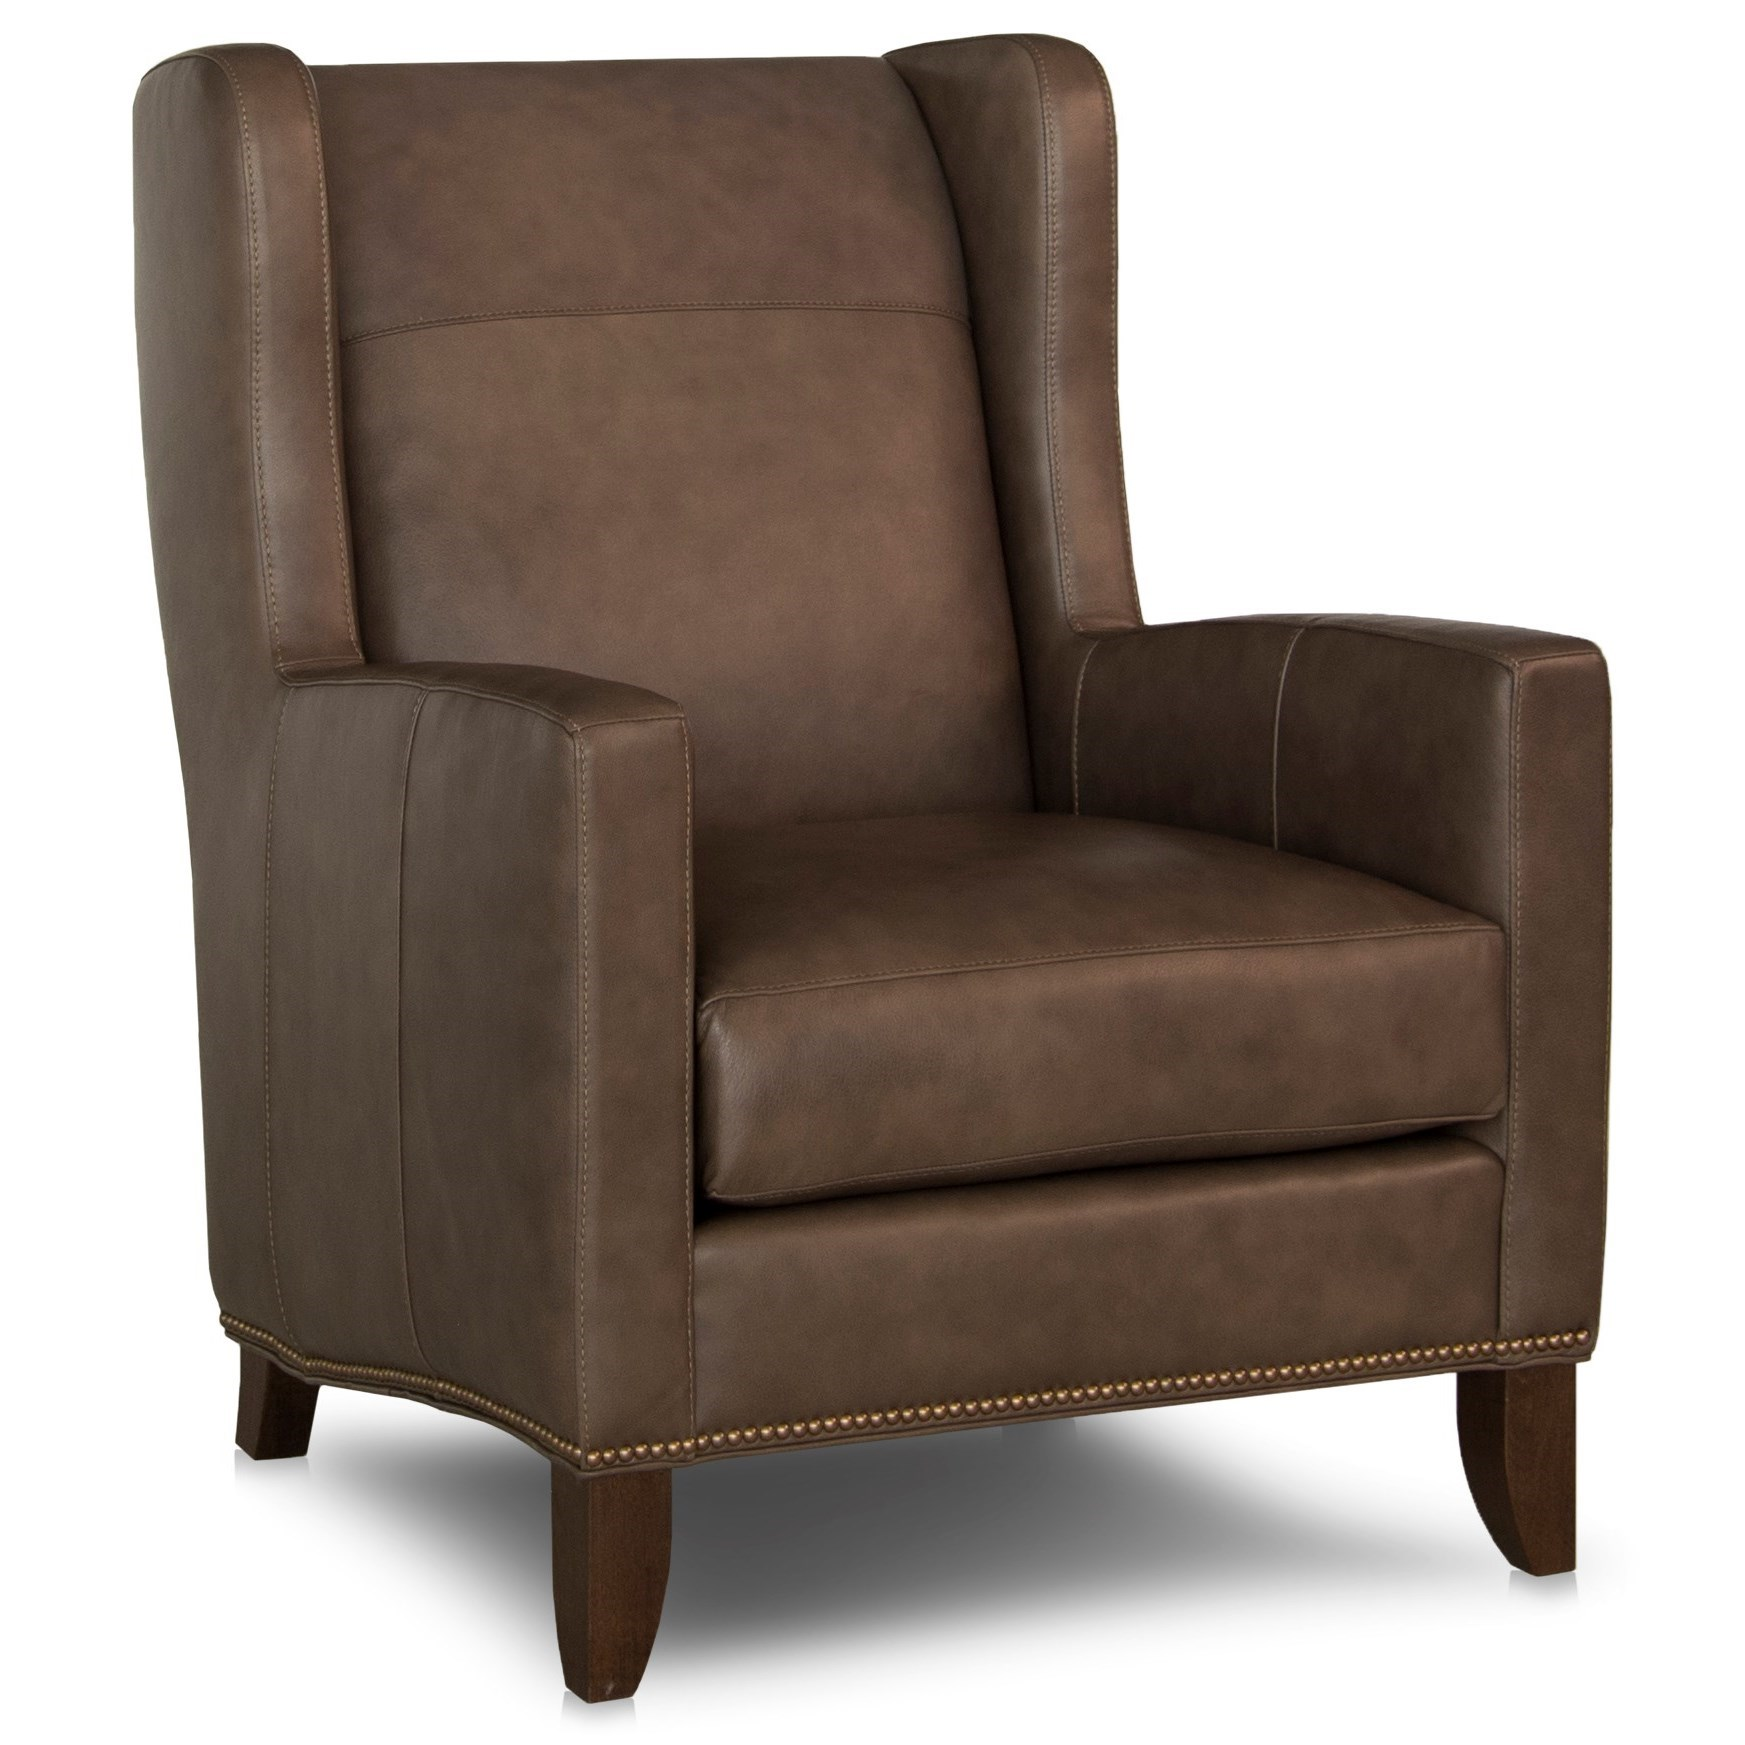 538 Wing Back Chair by Smith Brothers at Rooms and Rest